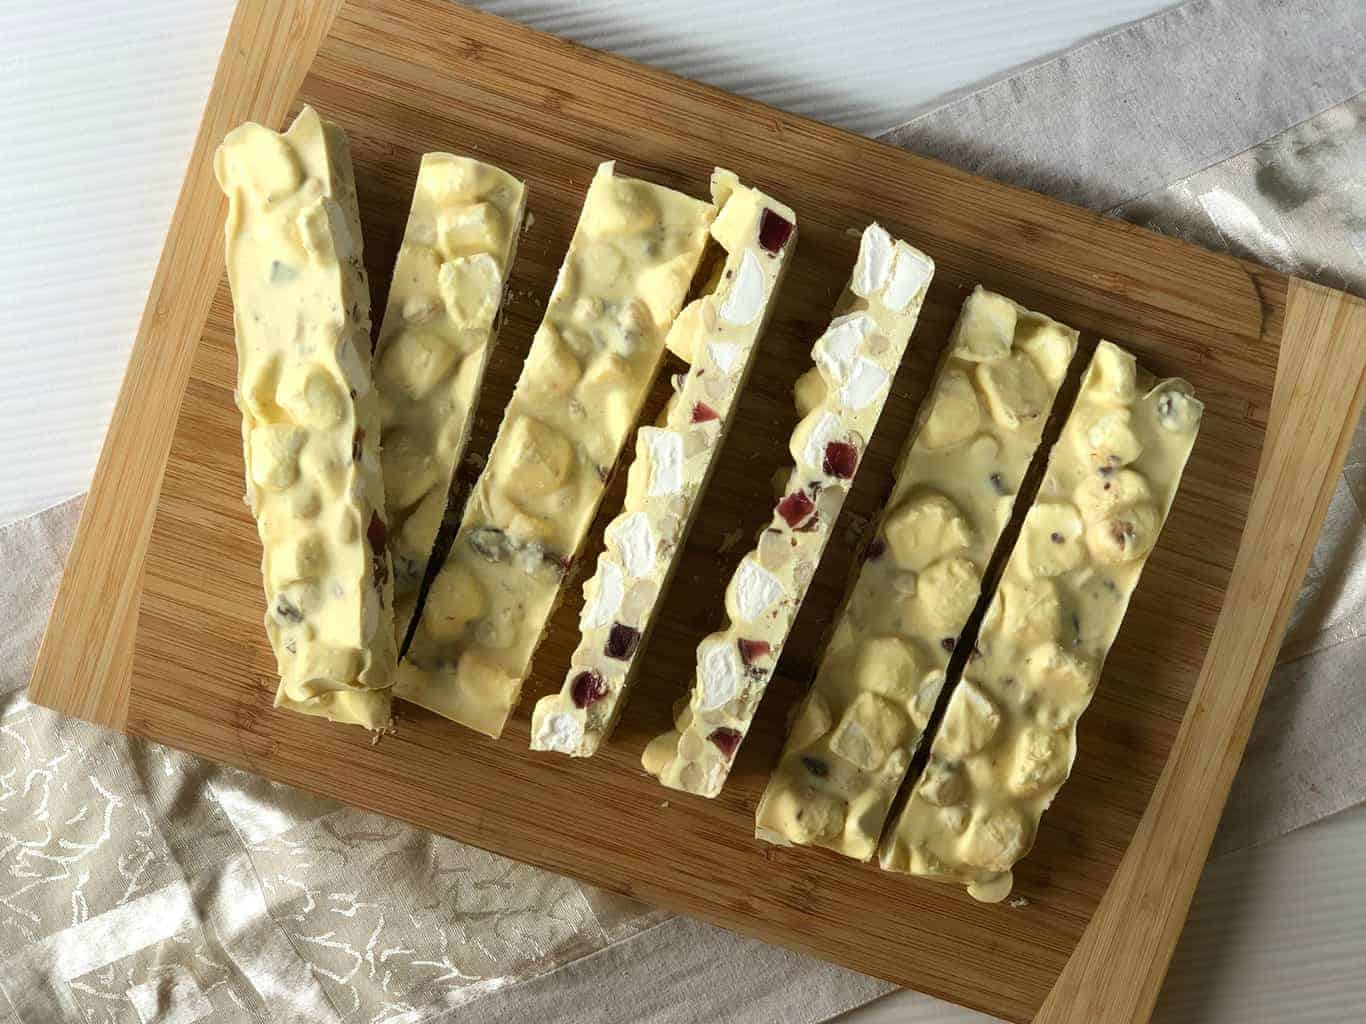 Slices of the Best White Chocolate Rocky Road